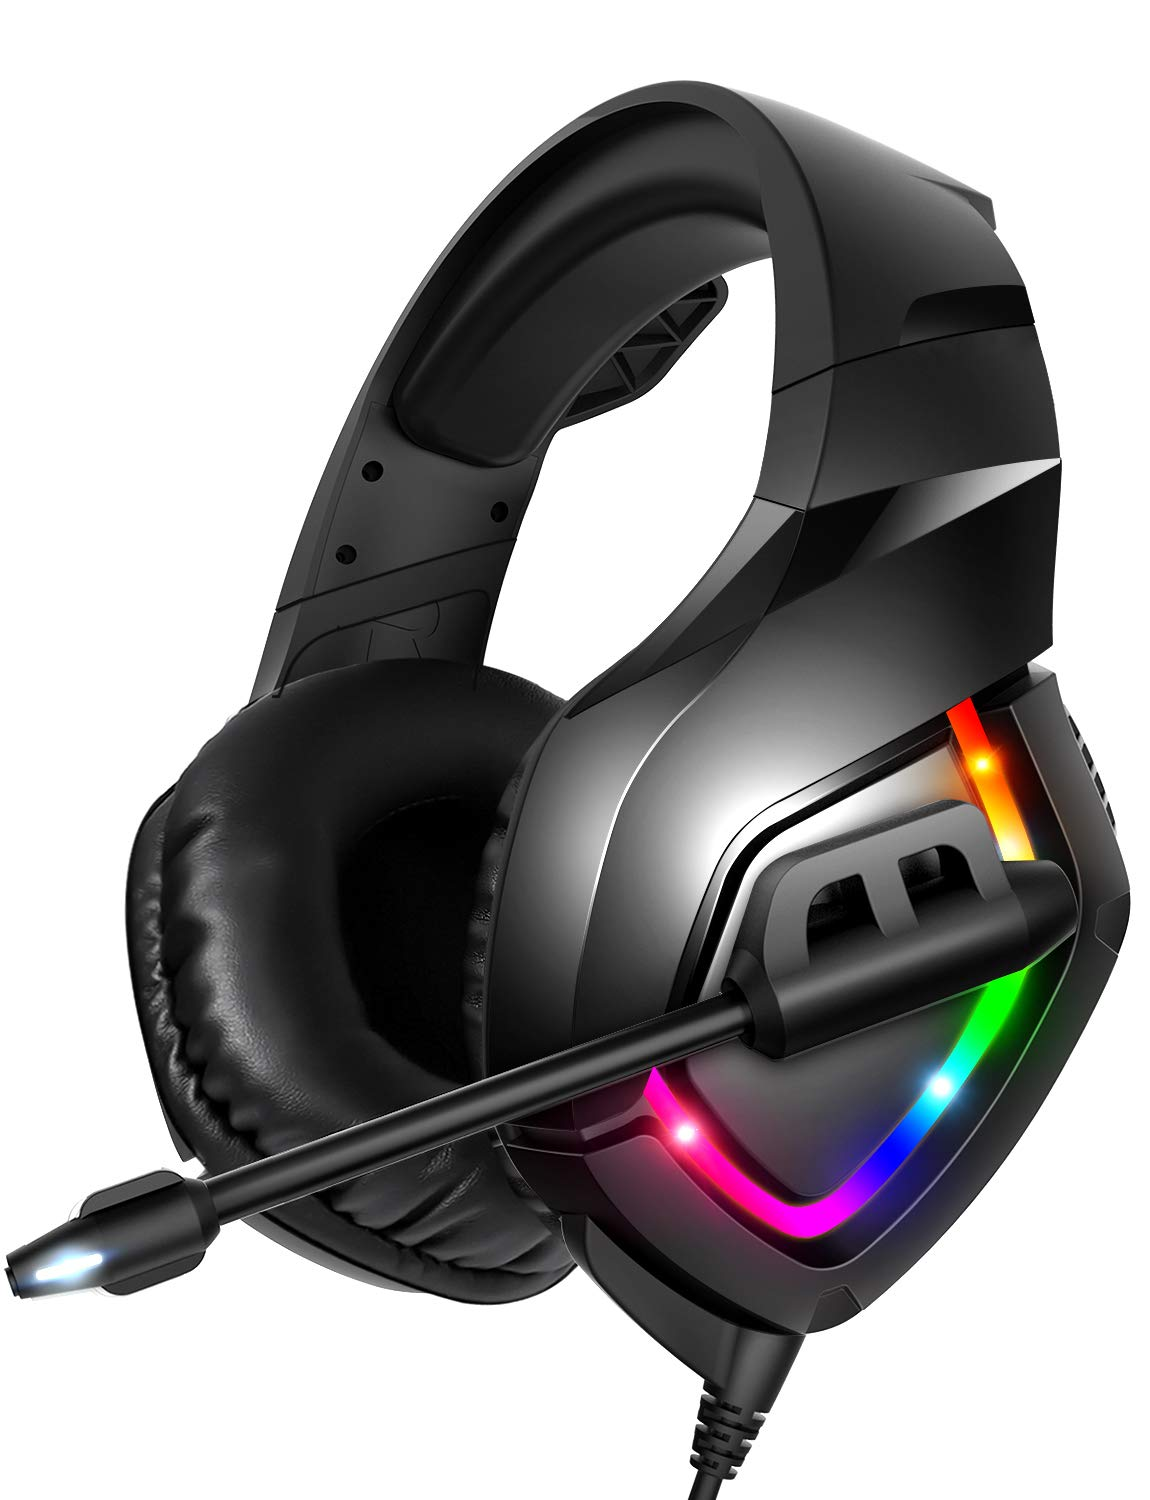 RUNMUS Gaming Headset PS4 Headset with 7.1 Surround Sound, Xbox One Headset with Noise Canceling Mic & RGB Light, Compatible w/ PS4, Xbox One(Adapter Not Included), PC, Laptop, NS, PS2 by RUNMUS